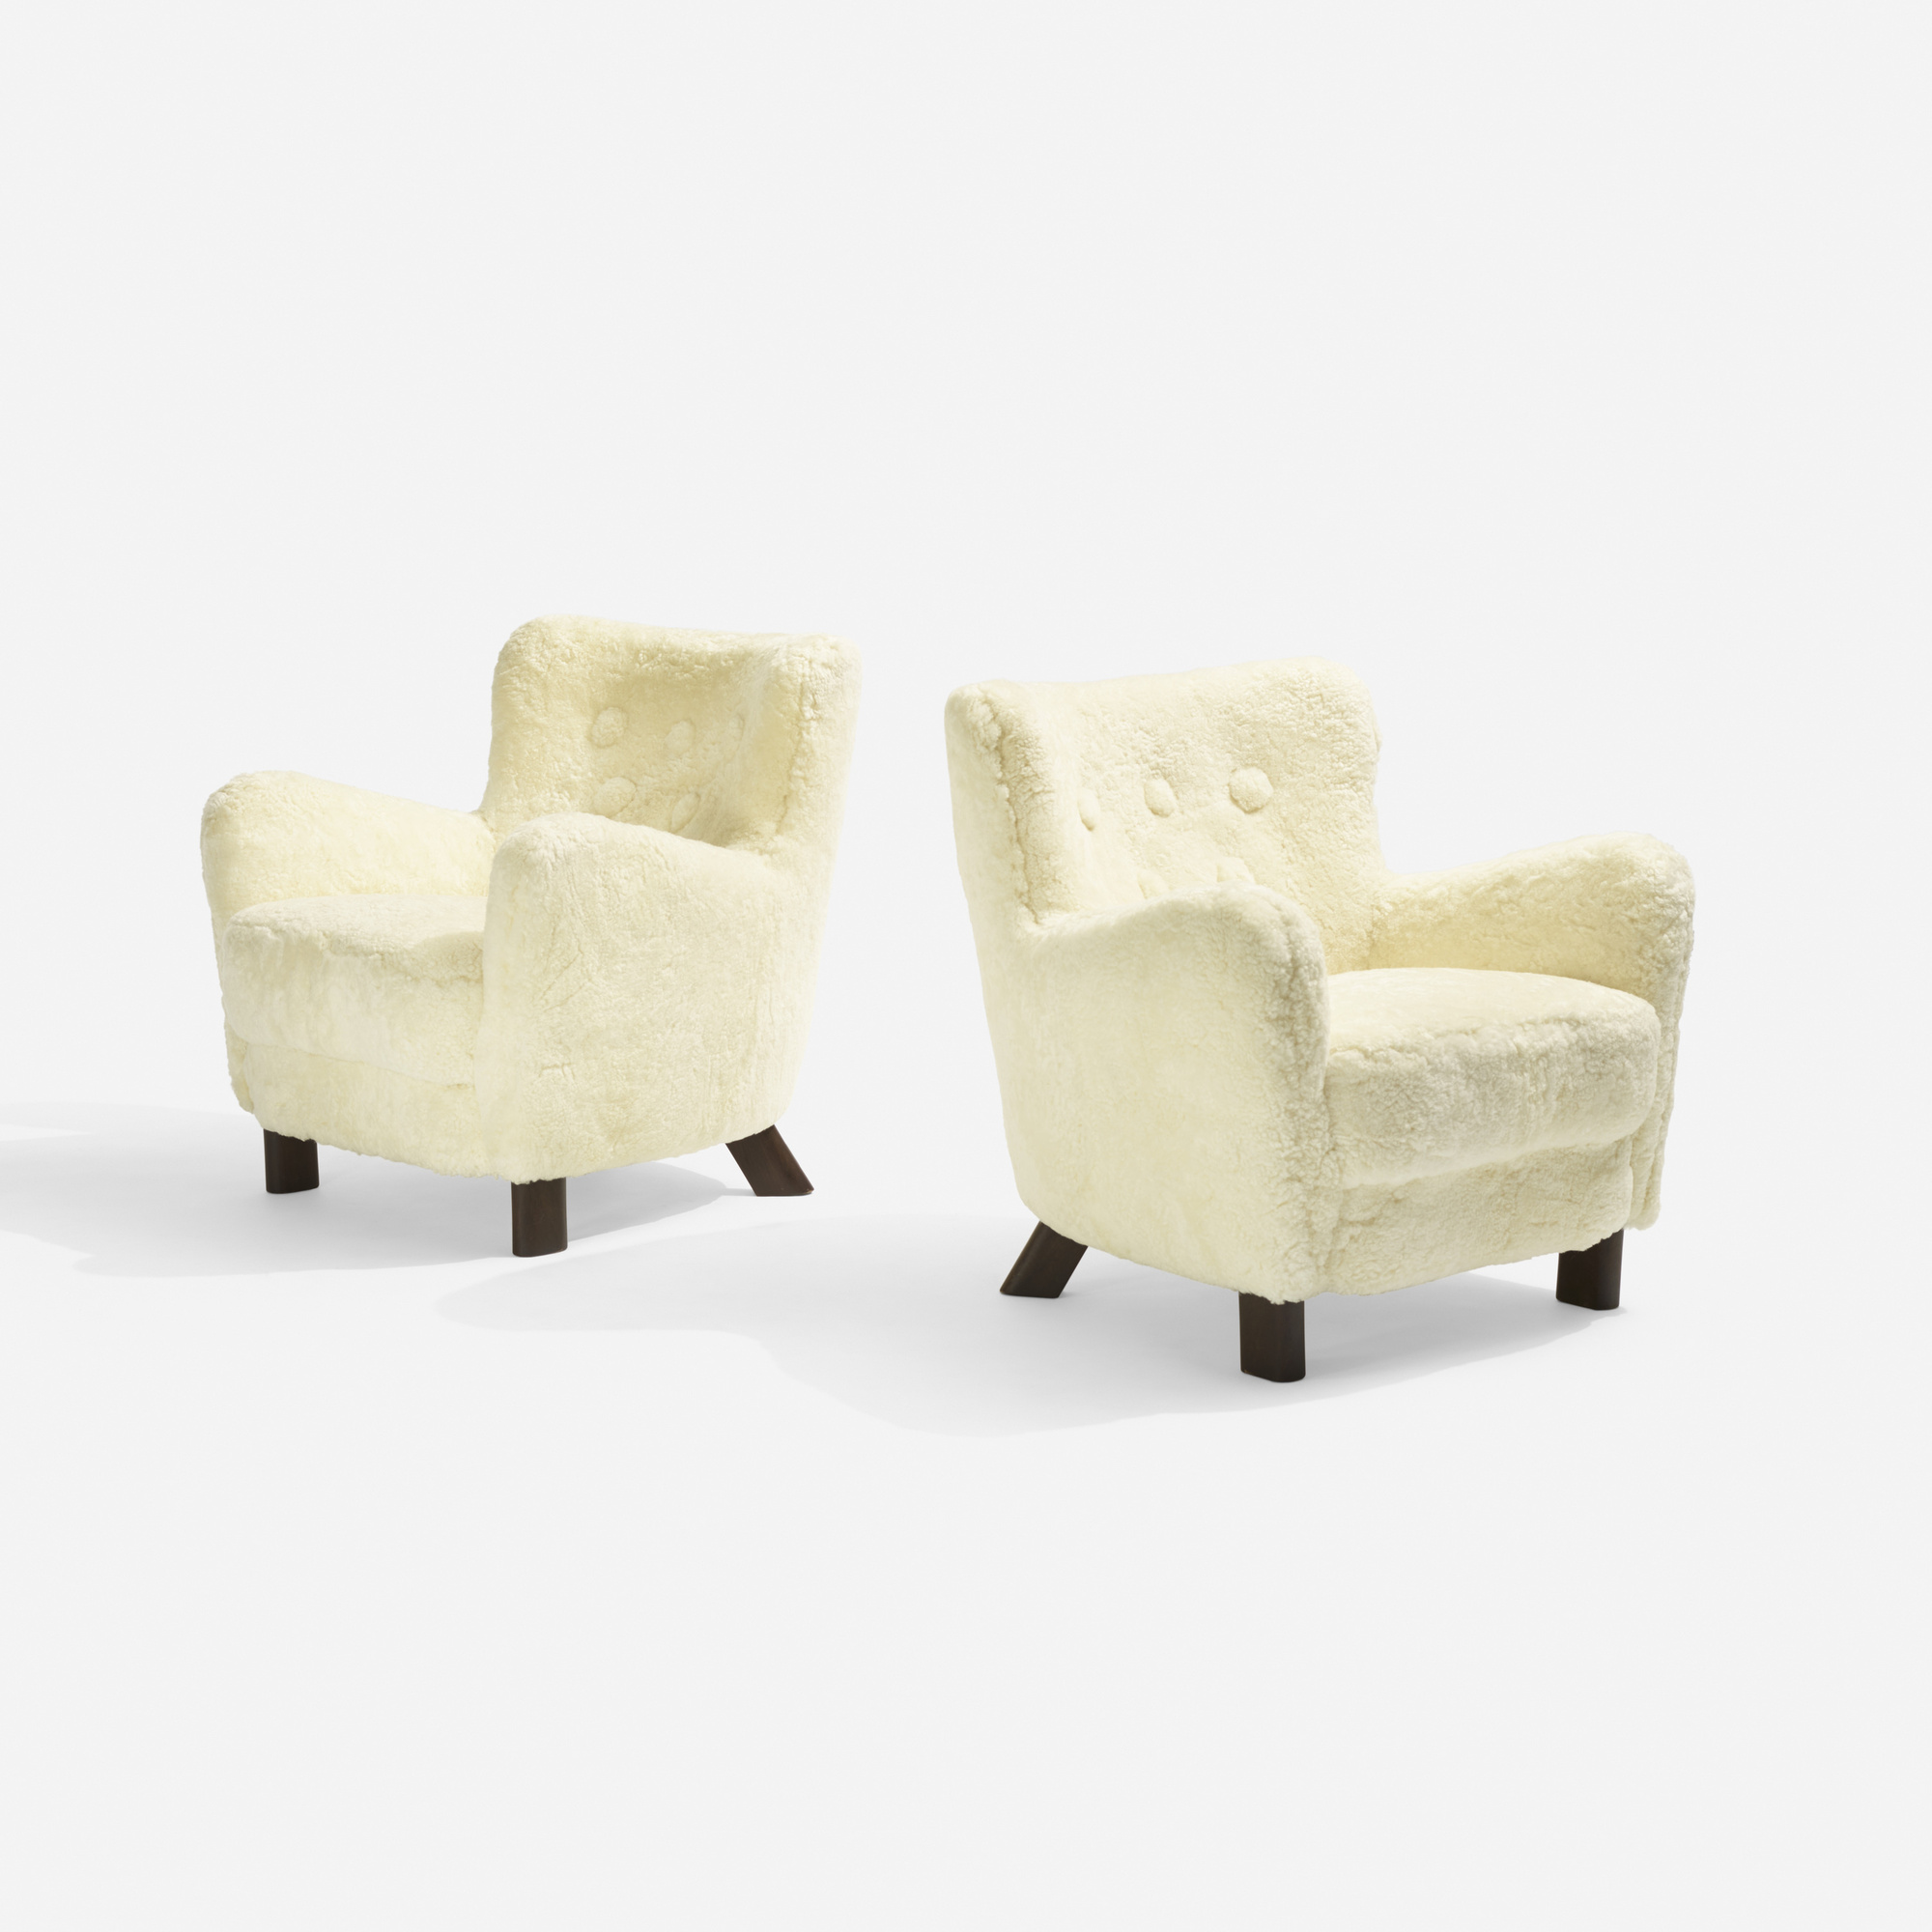 157: Fritz Hansen / lounge chairs model 1669, pair (1 of 3)